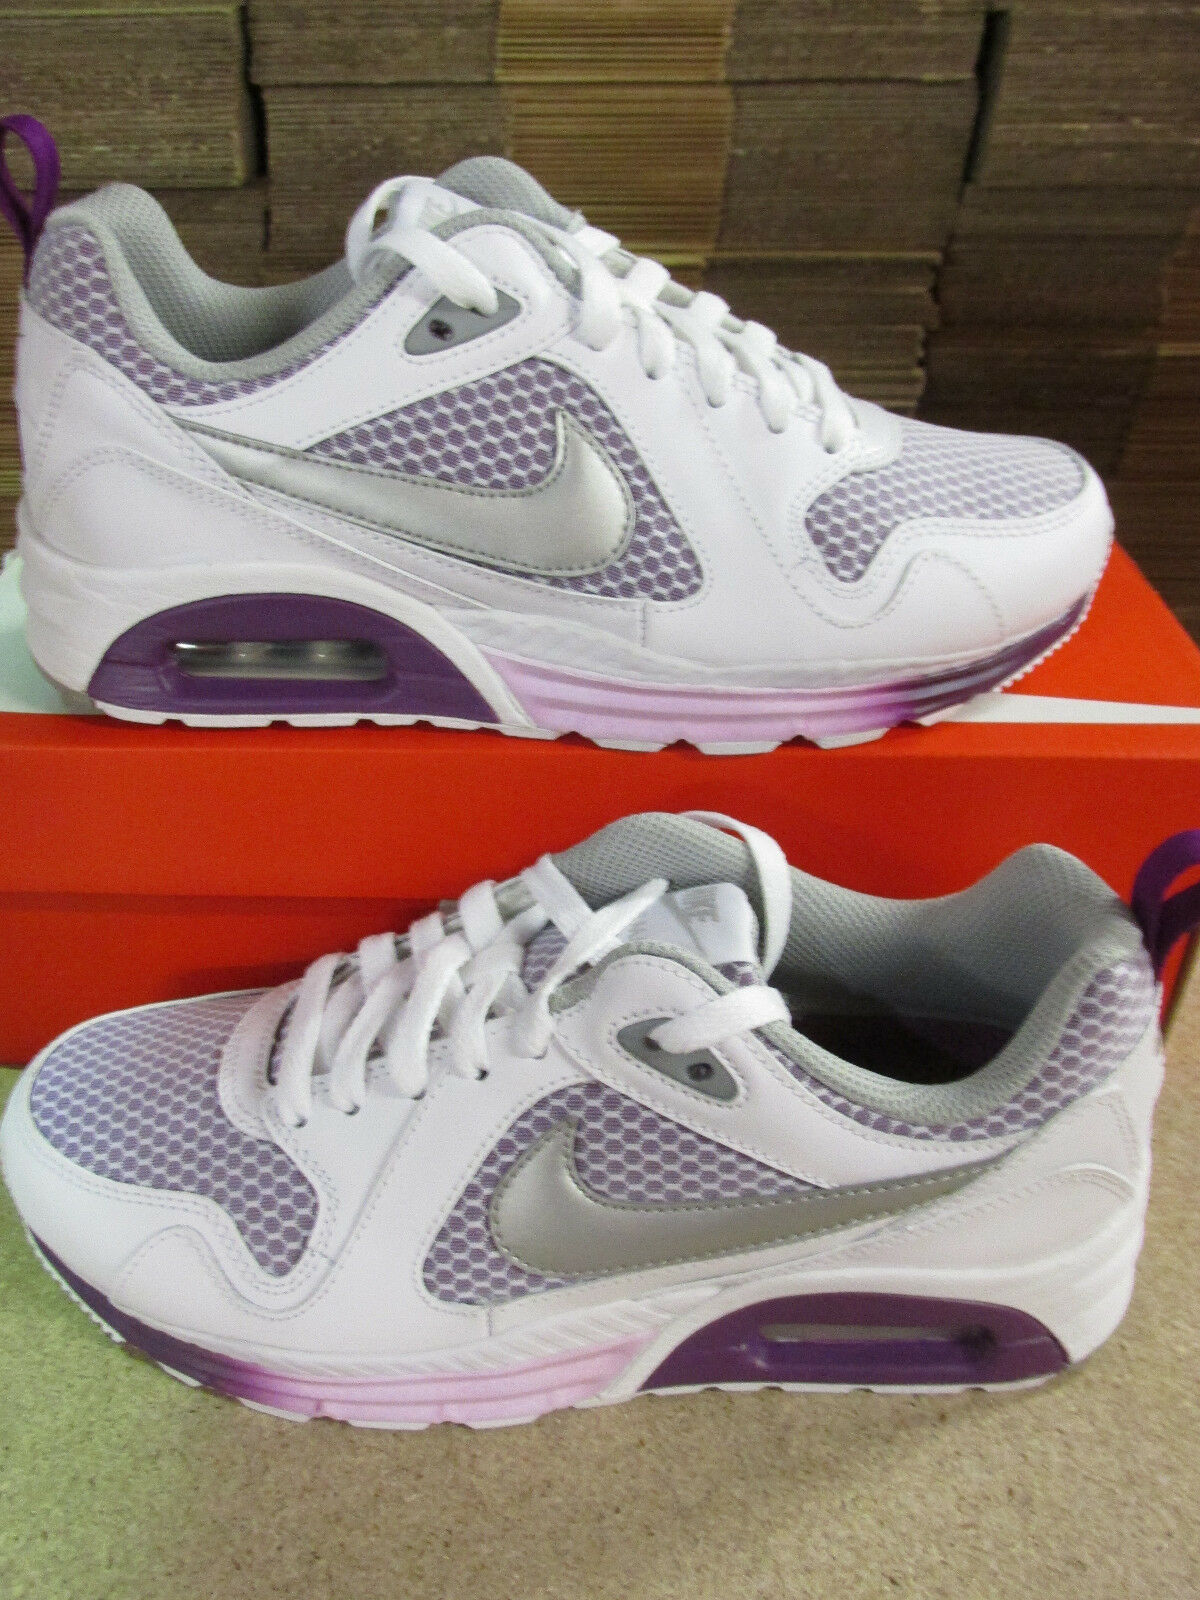 Nike Womens Air Max Trax Running Trainers 631763 102 Sneakers Shoes